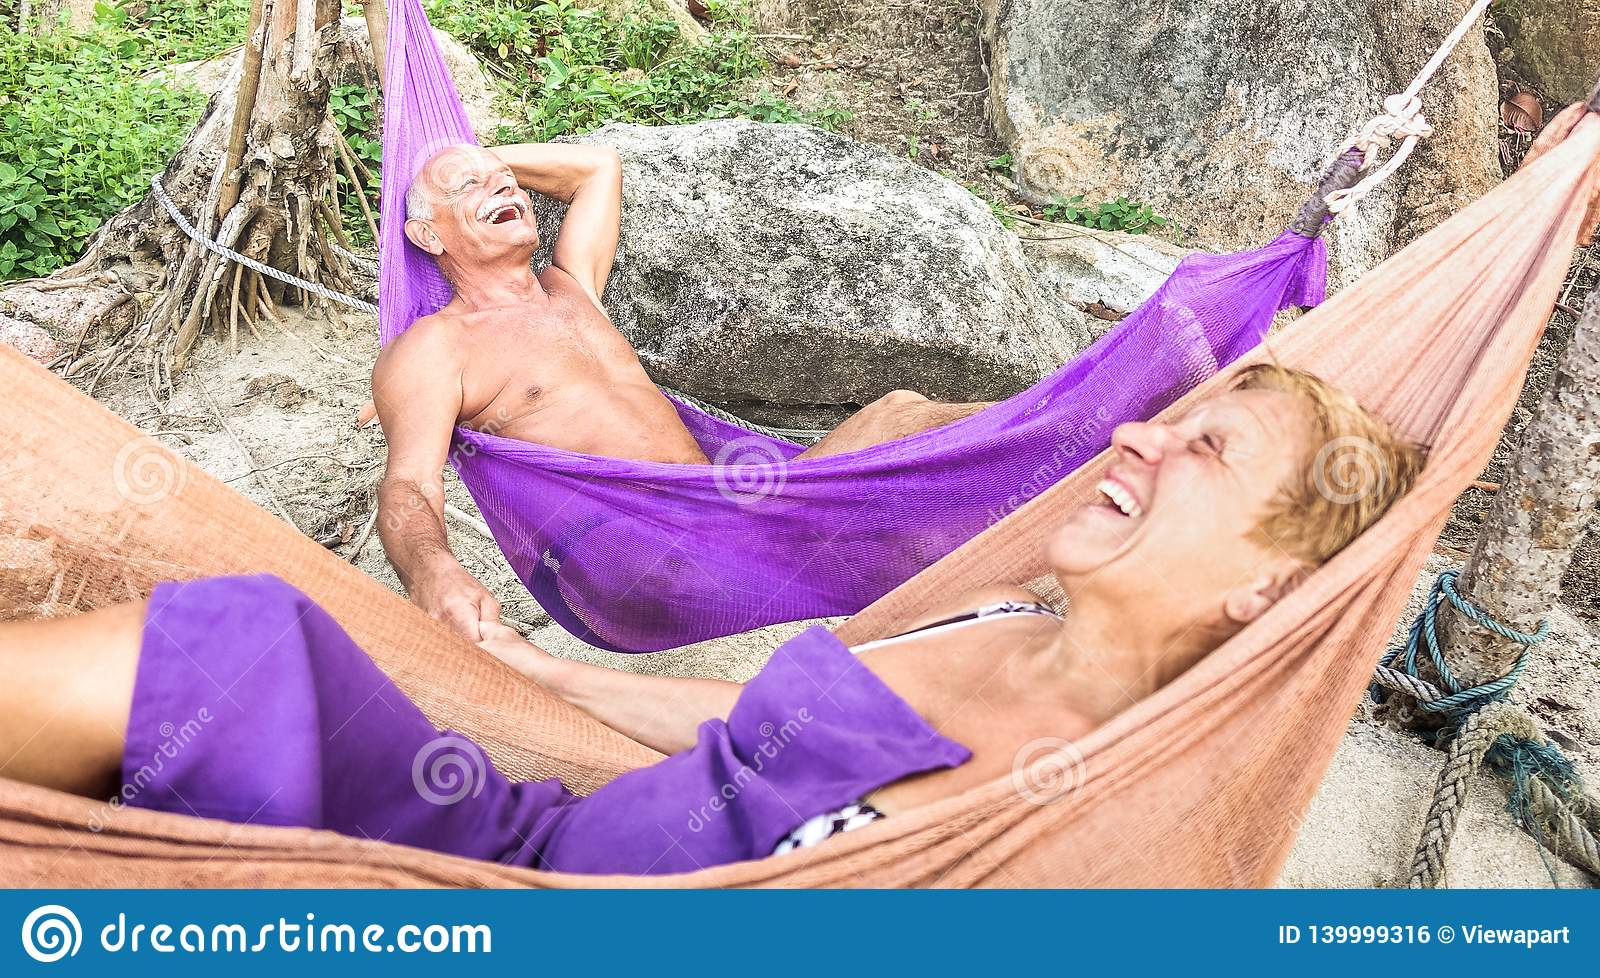 Senior retired couple vacationer relaxing on hammock at beach - Active youthful elderly and happy travel concept on tour around